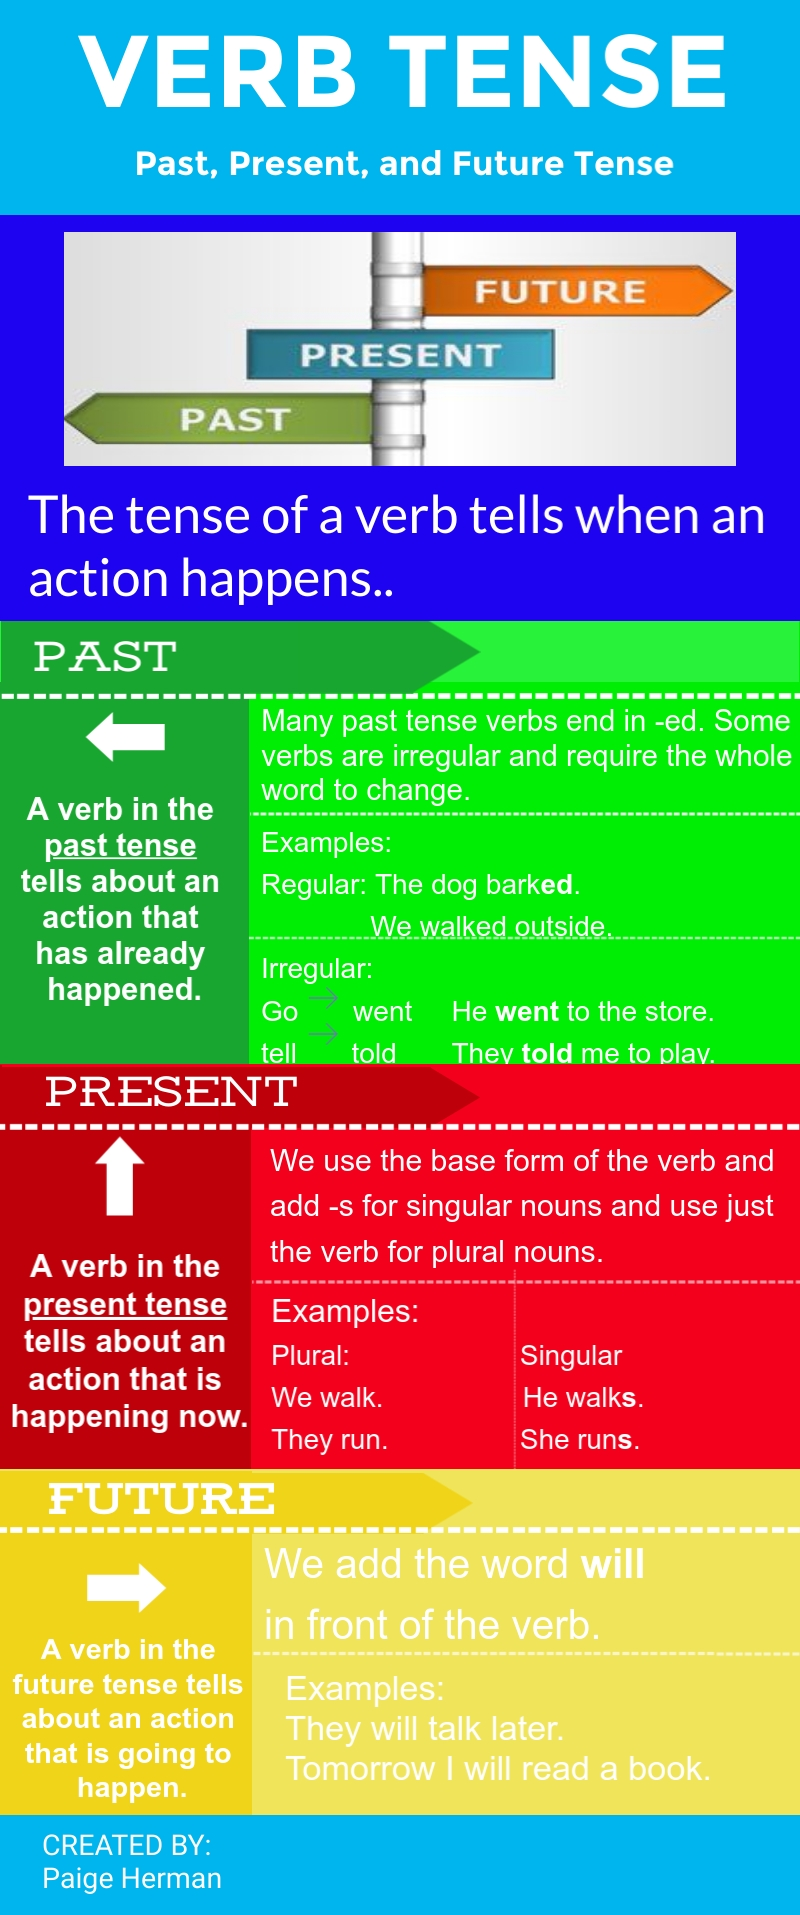 hermanpaige_38231_1994306_Verb Tense Infographic